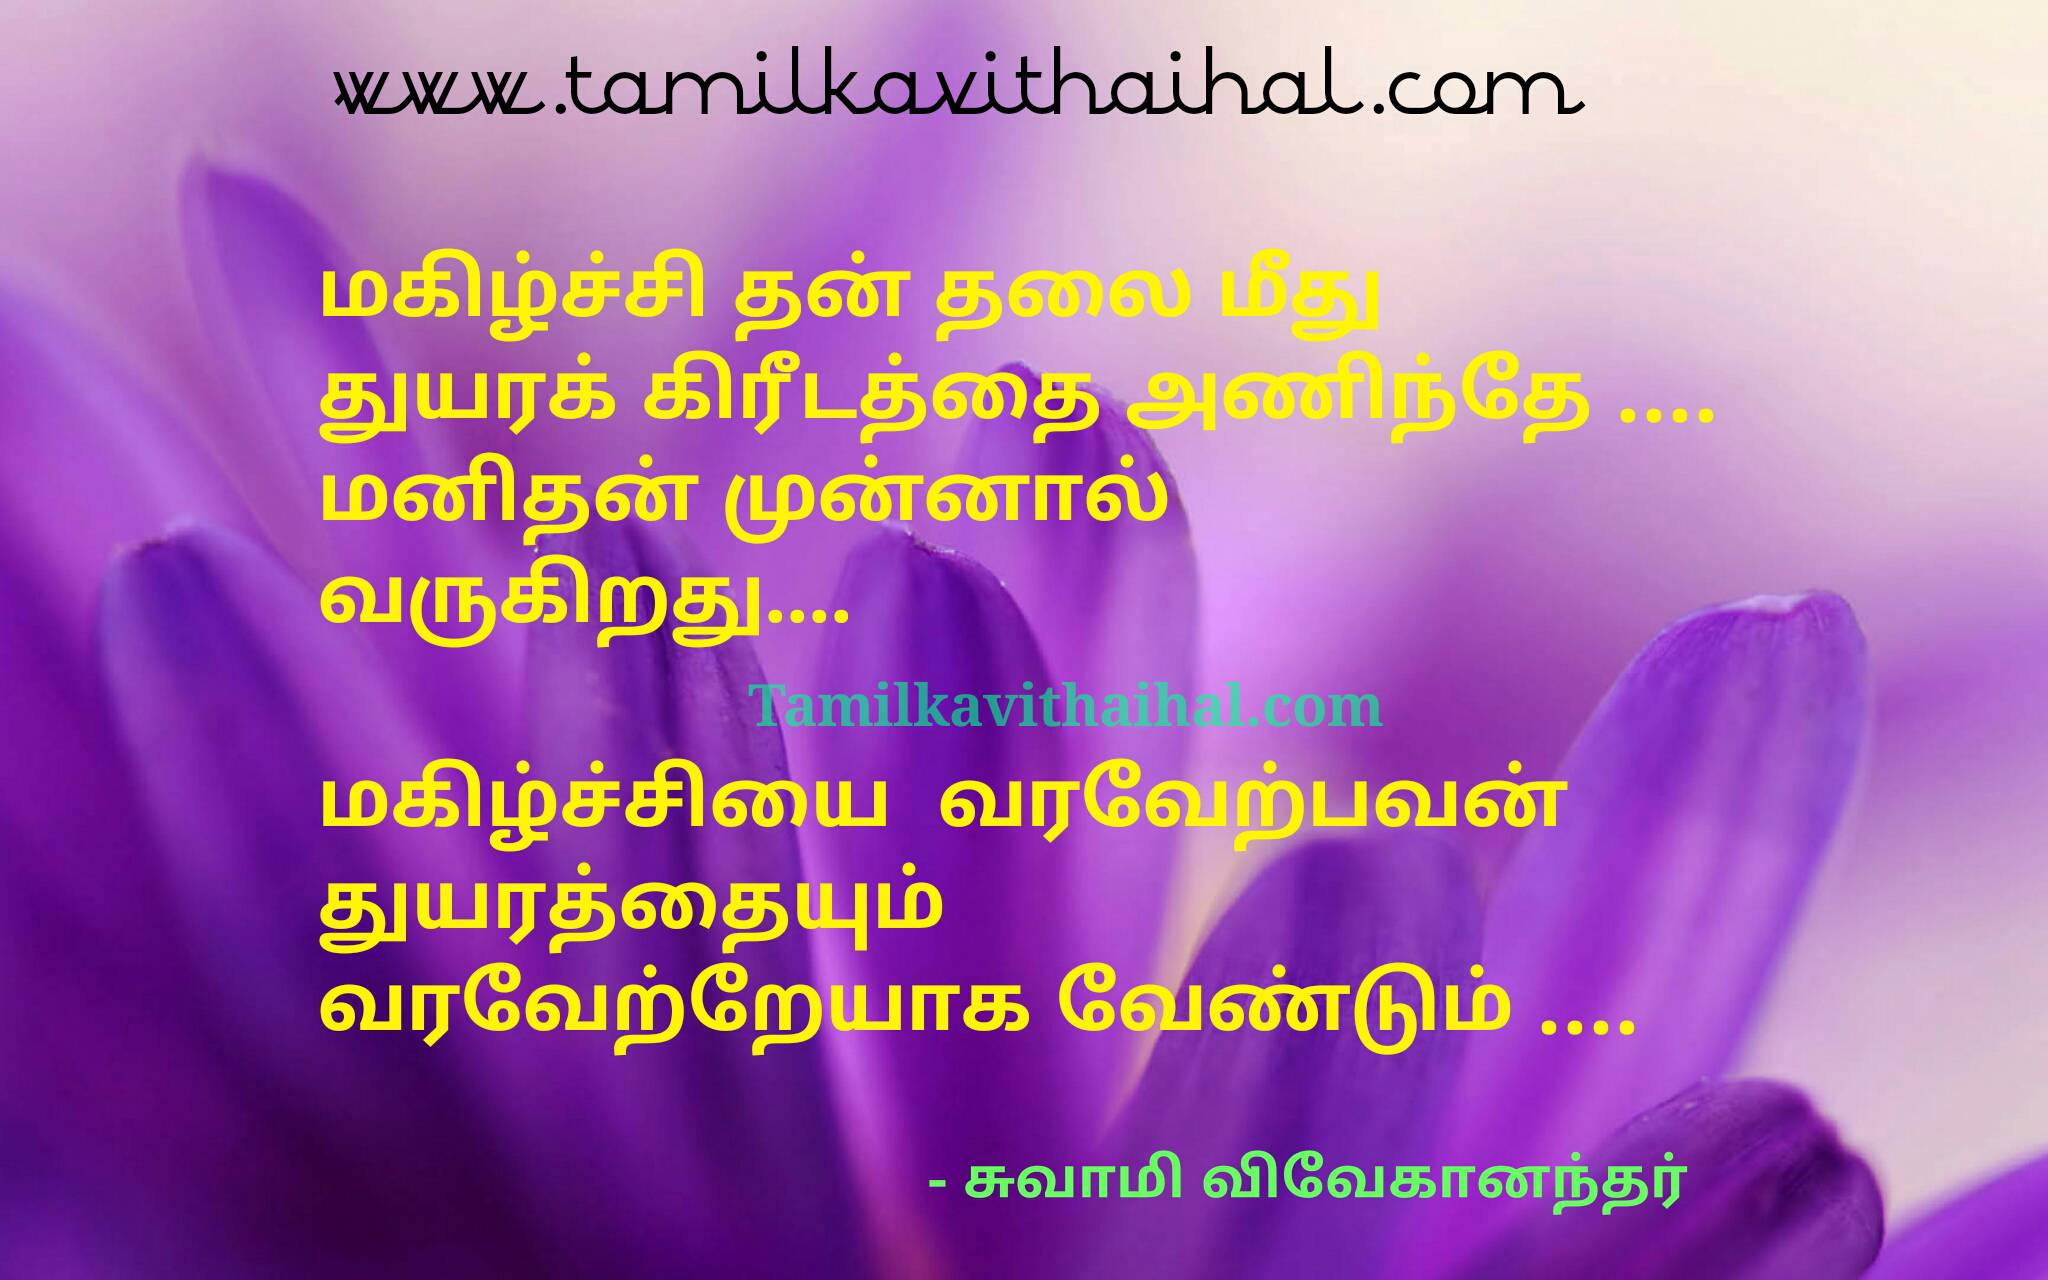 Vivekanandhar quotes in tamil about magilchi thuyaram manithan varaverpu images hd wallpapers